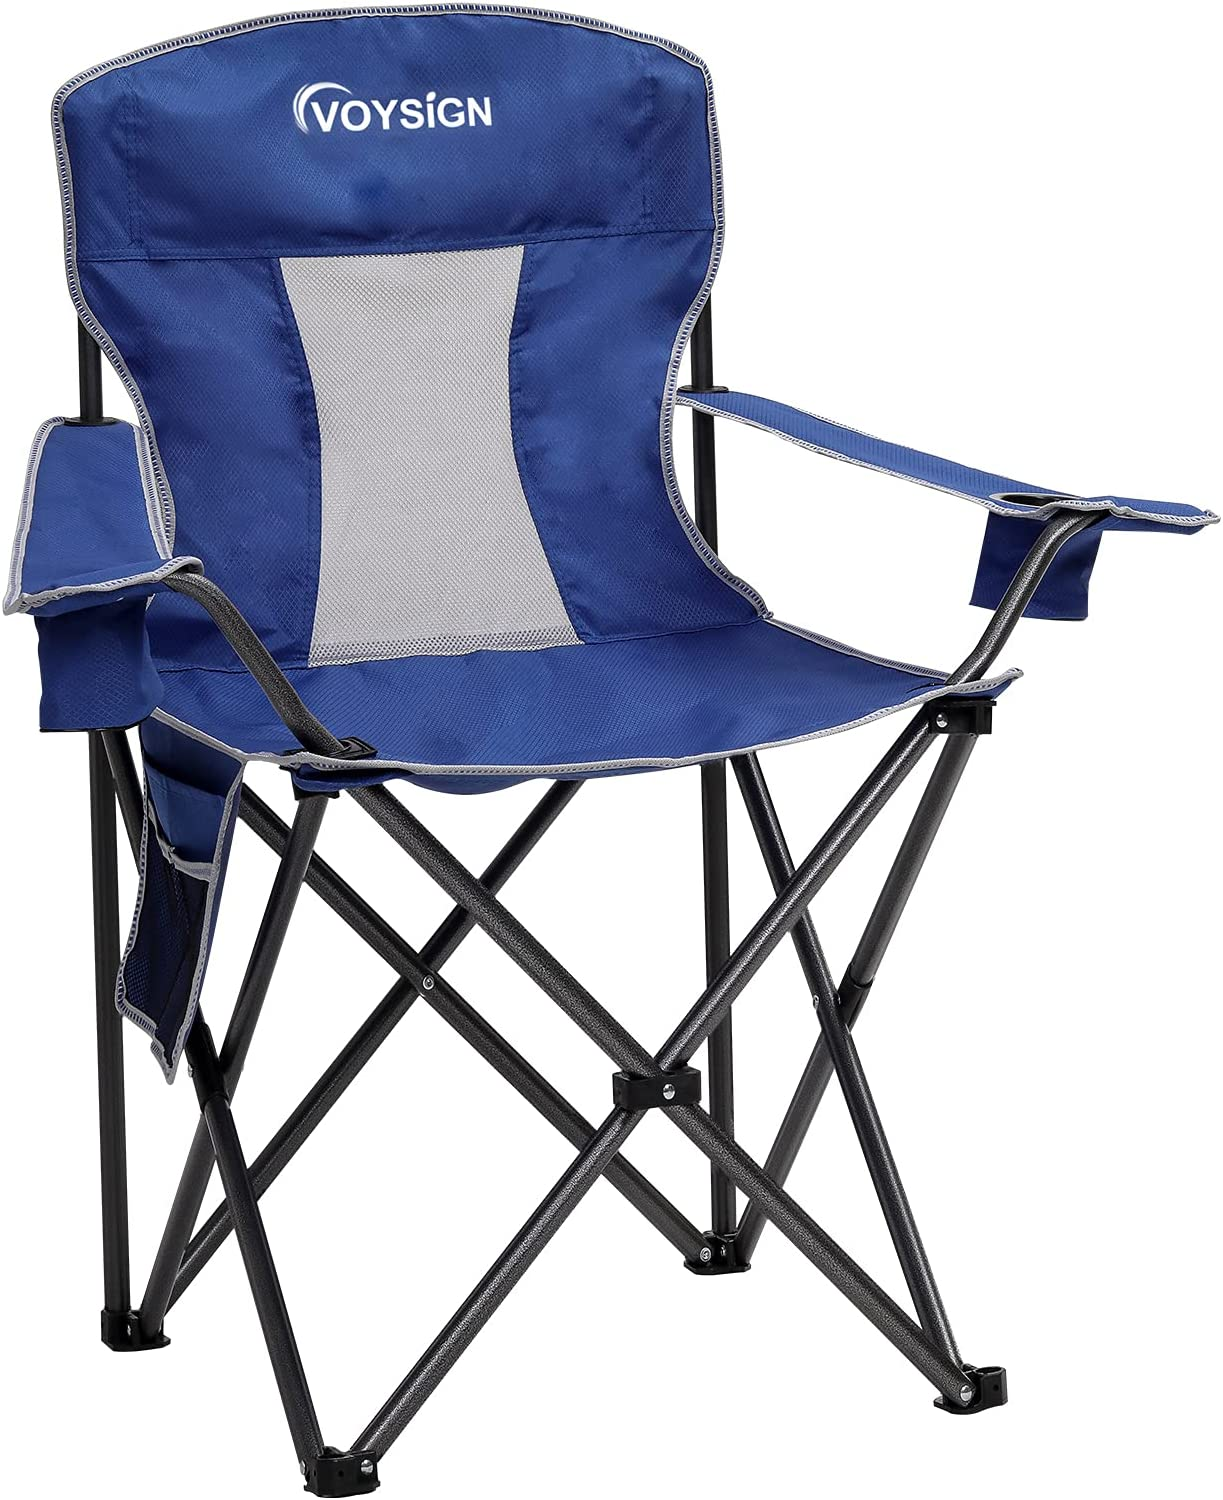 VOYSIGN Mesh Camping Chairs for Oversized Discount mail order Outdoo Adults Folding Sale SALE% OFF